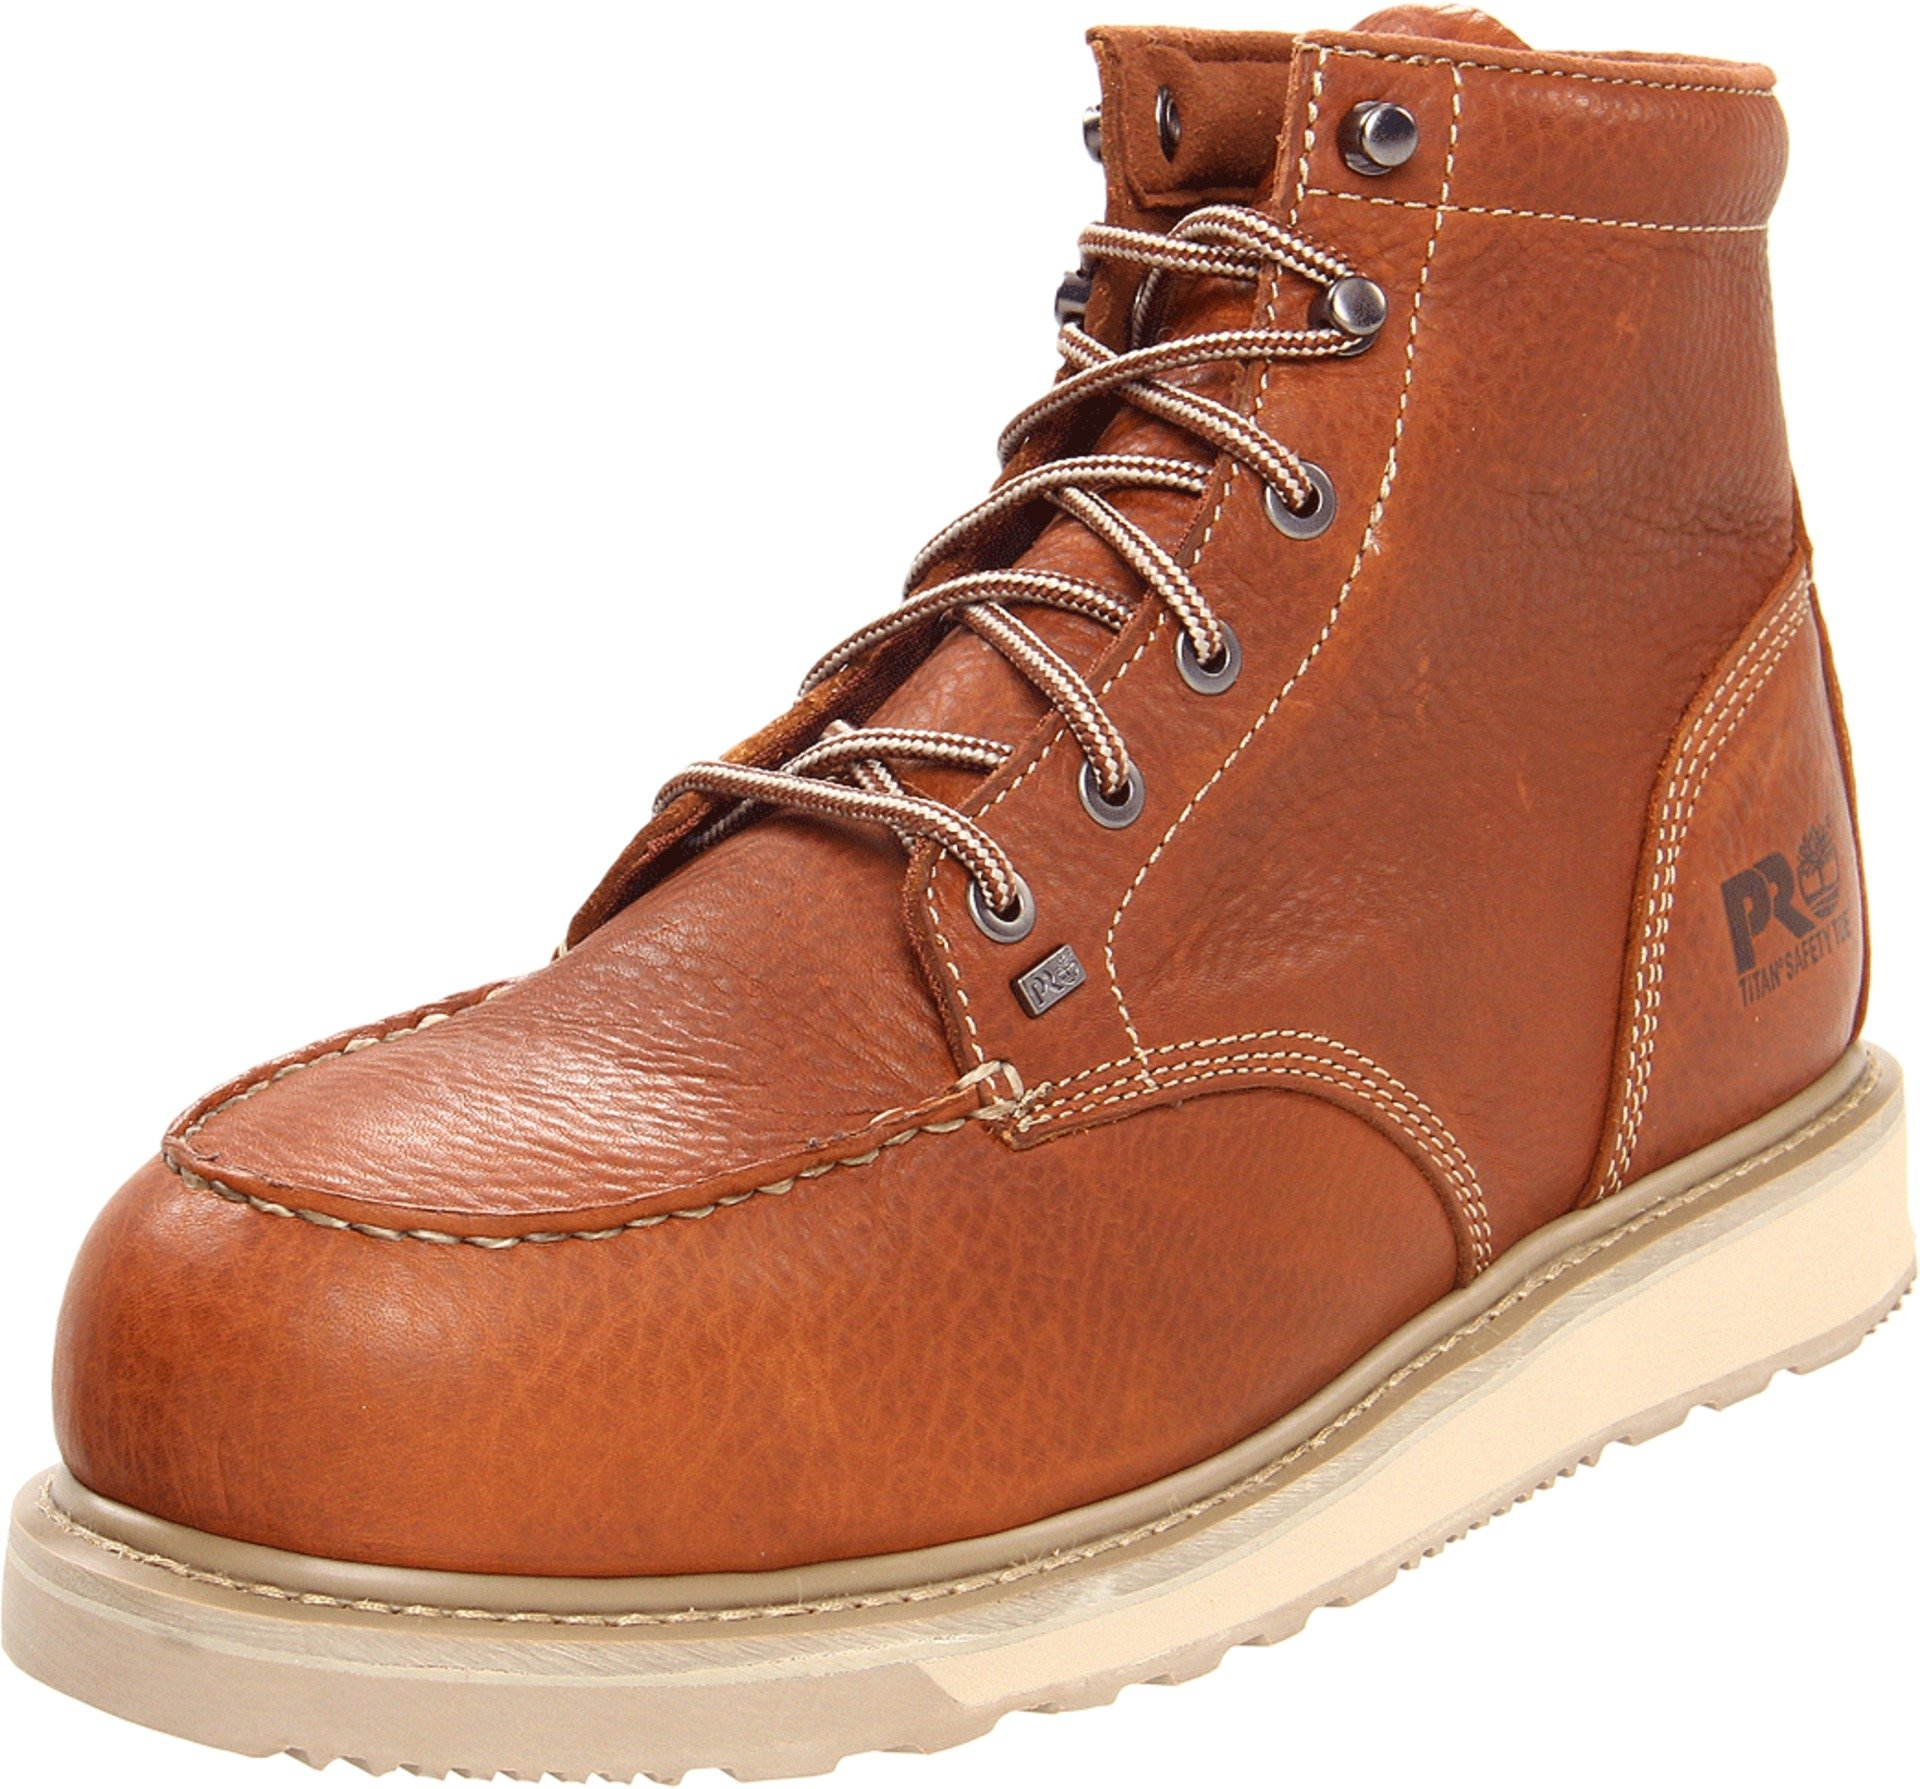 Timberland PRO Men's Barstow Wedge Alloy Steel Toe Work Boot,Brown,12 M US